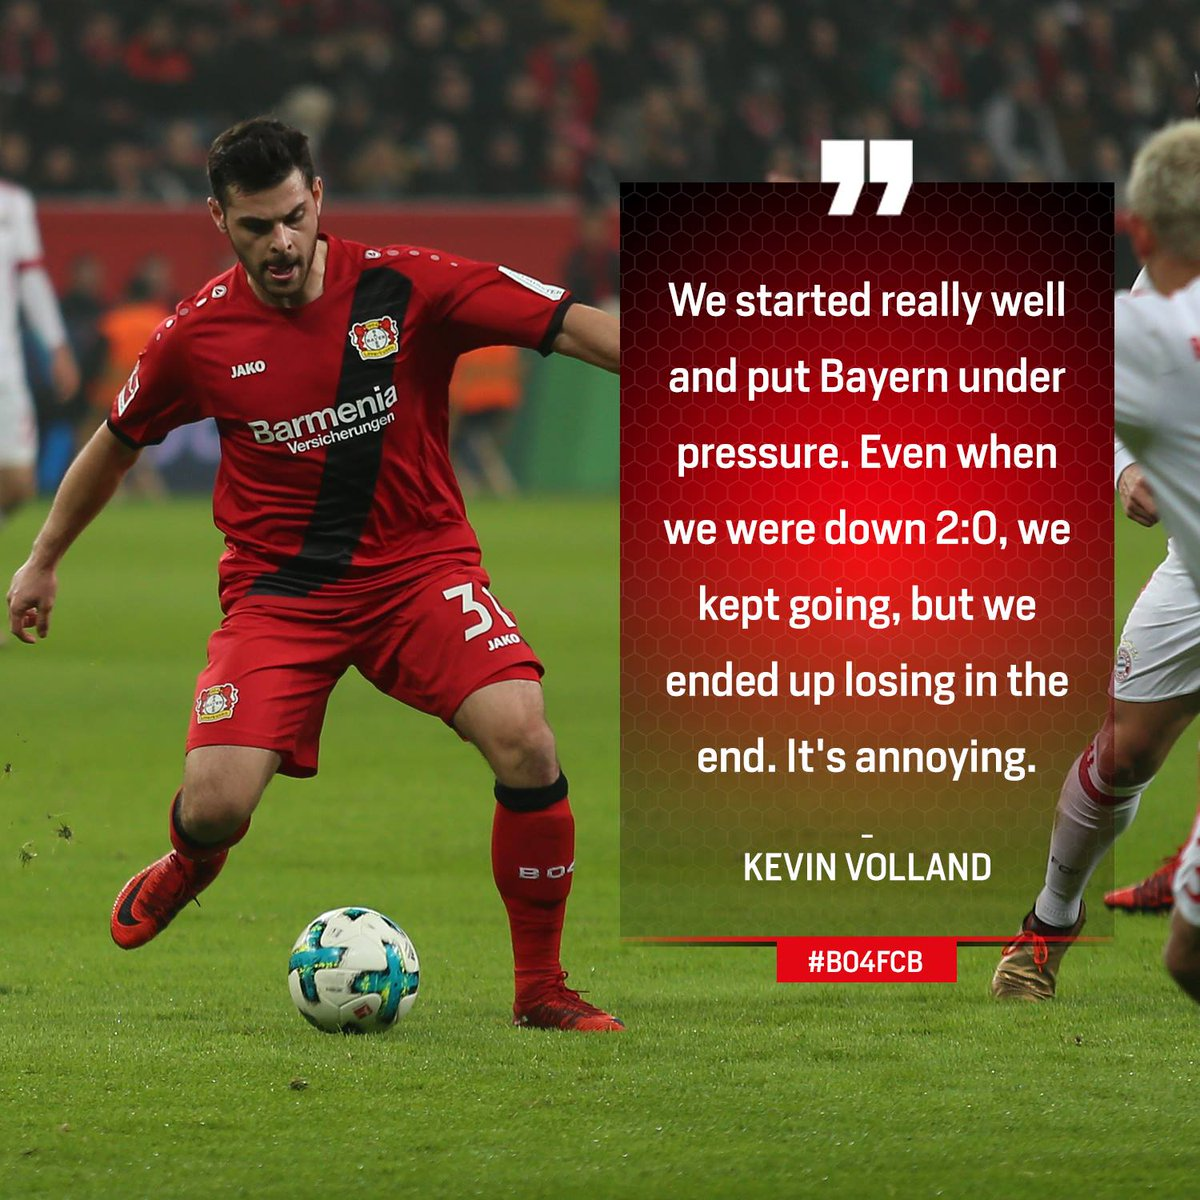 "RT @bayer04_en: ""It's annoying."" - Kevin Volland describes the result in #B04FCB https://t.co/a4eu7iA5RI"